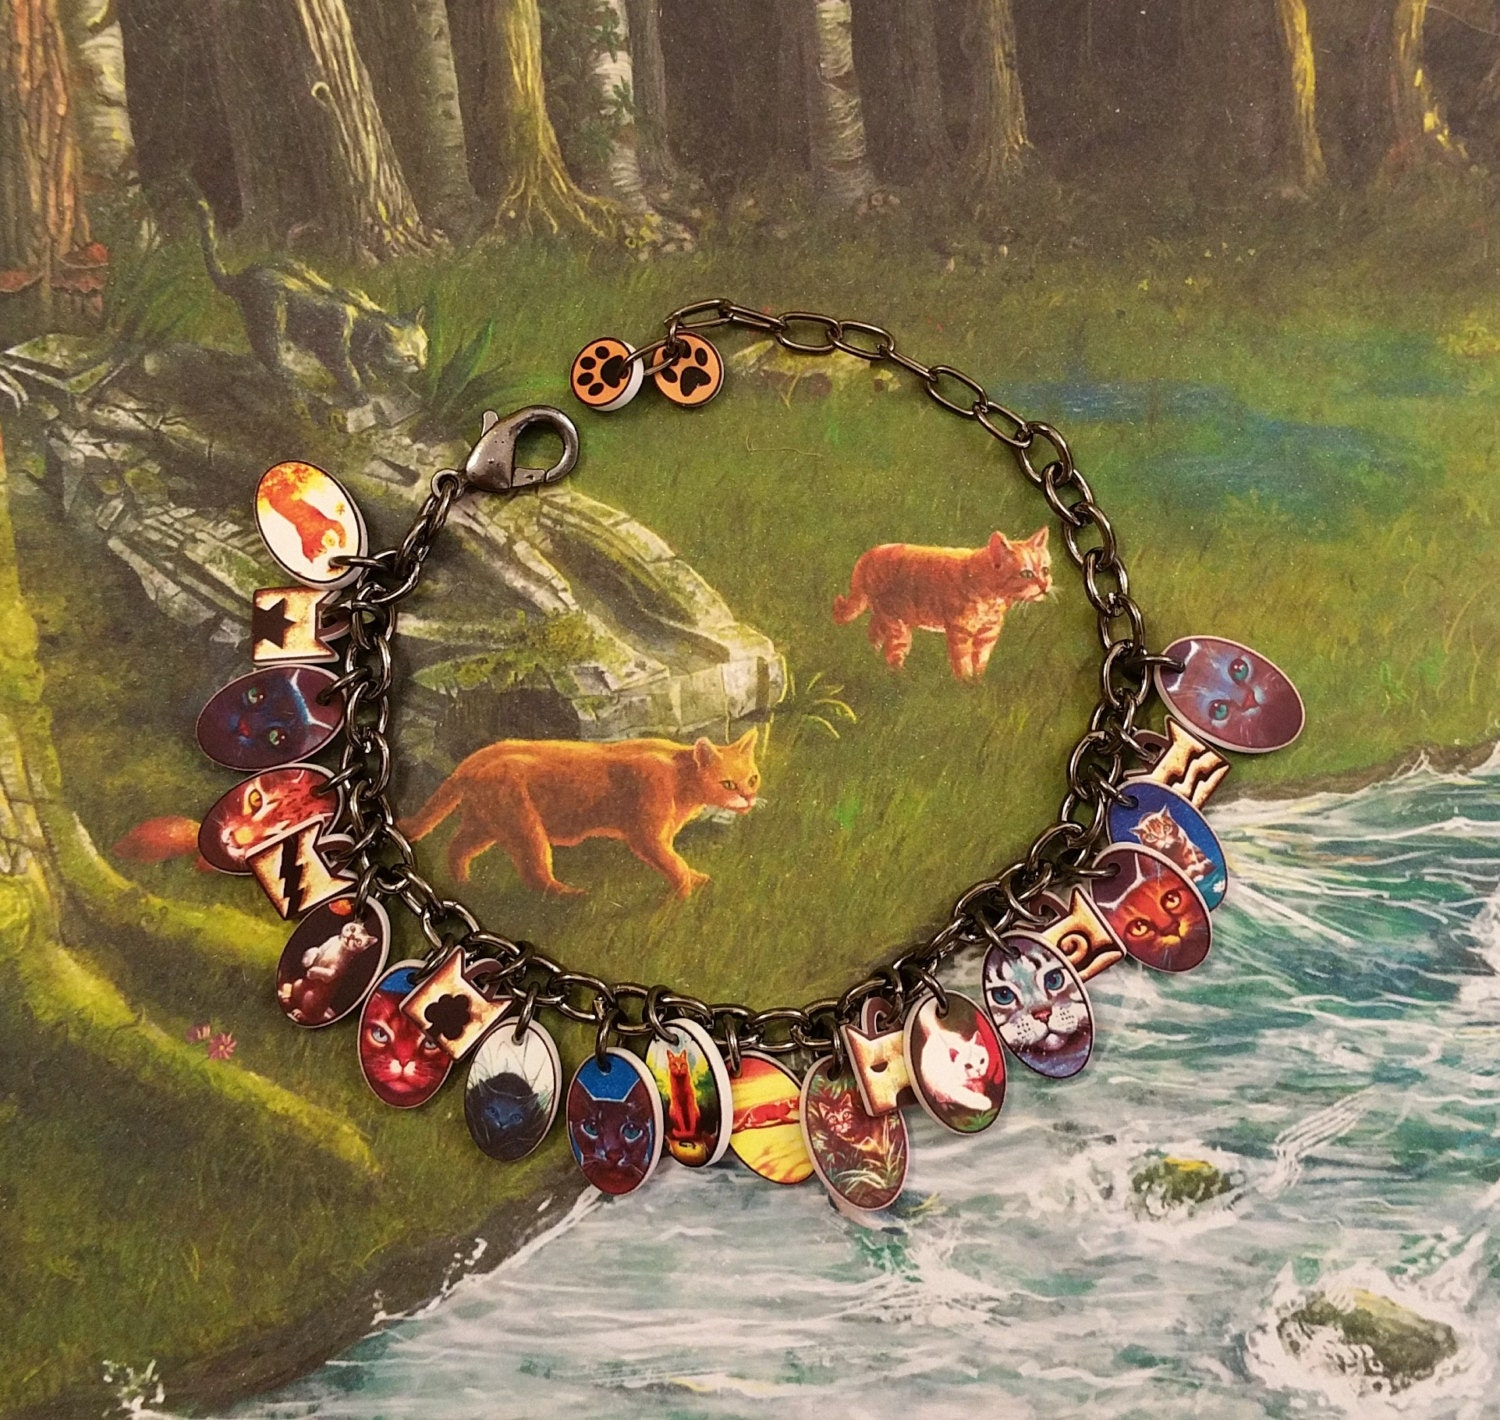 Warriors Book Series Review: Warrior Cats Warrior Cats Jewelry Warrior Cats Bracelet